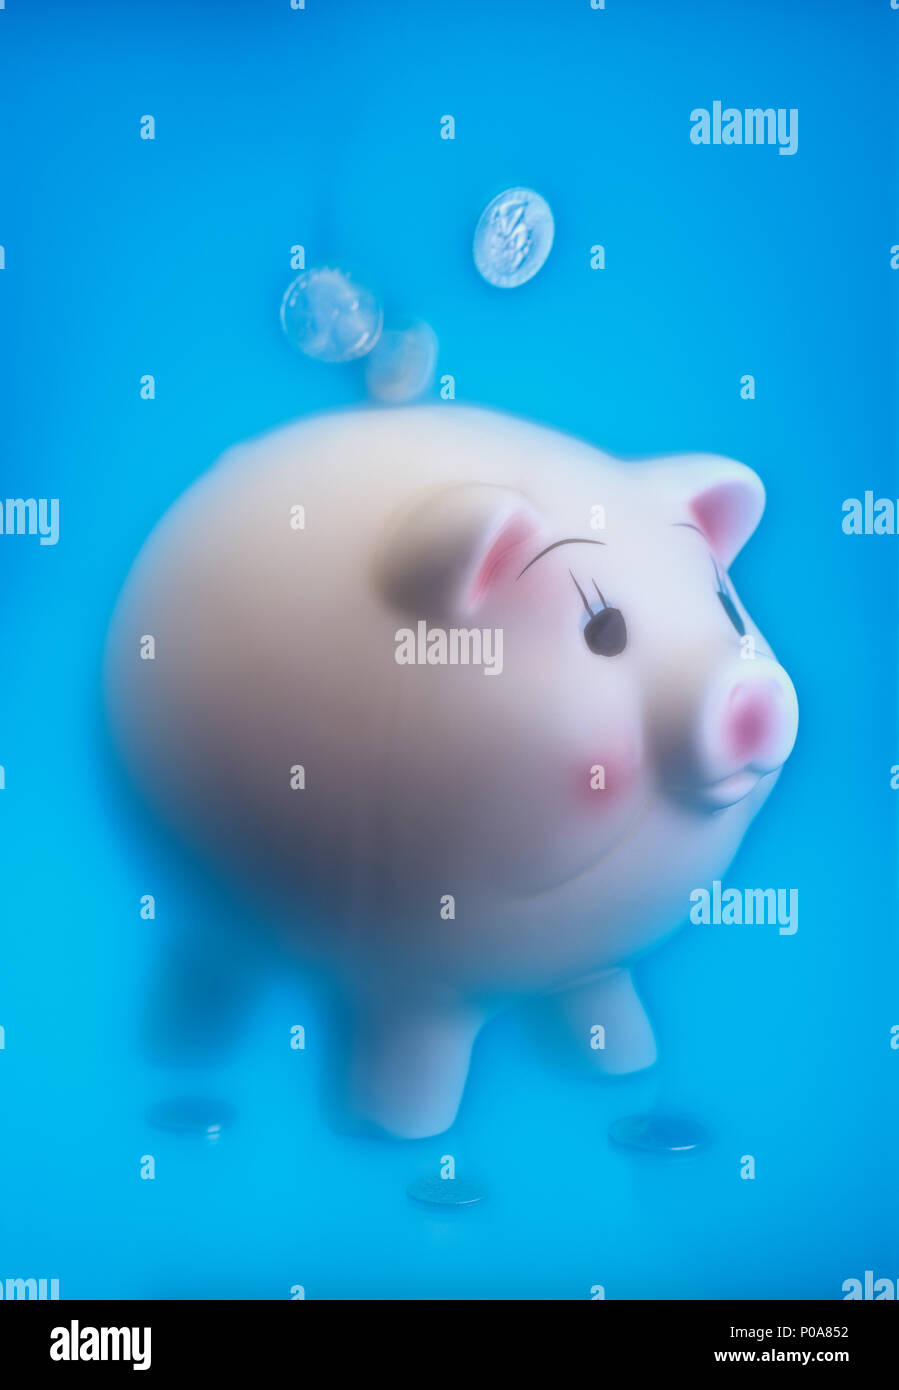 Conceptual image of coins falling from the sky into a piggy bank with a soft ethereal background - Stock Image